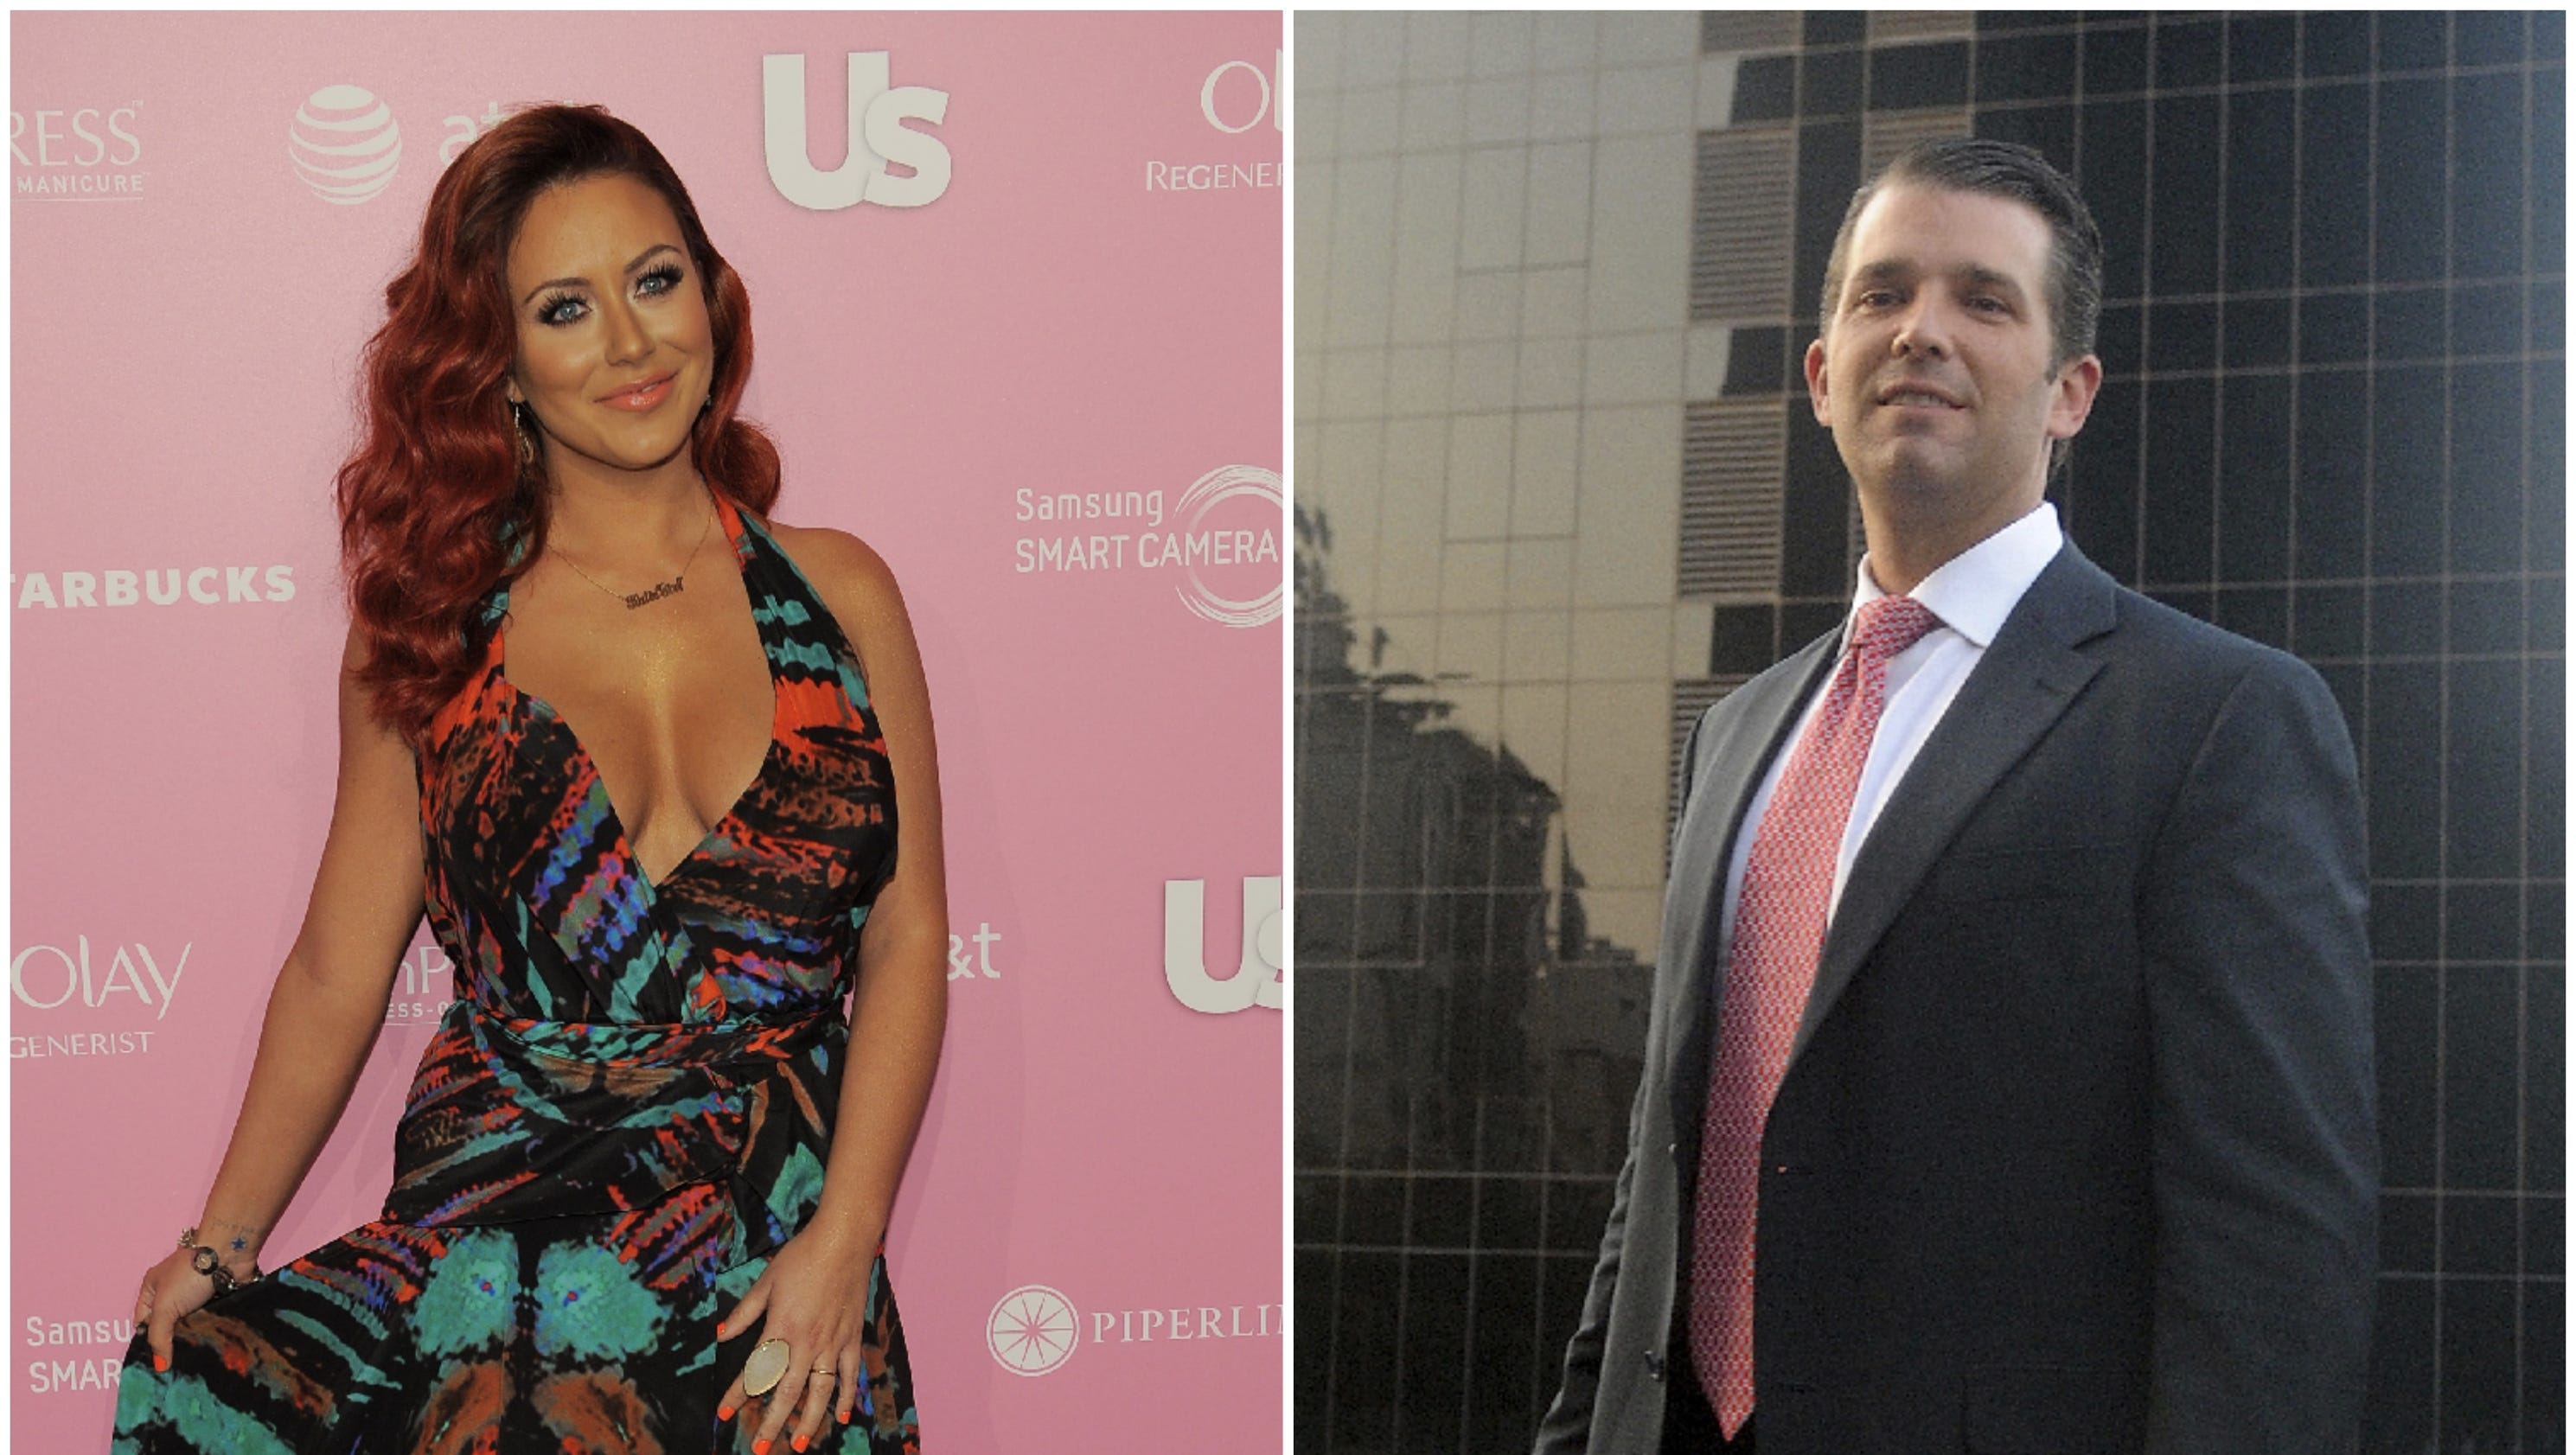 Is Aubrey O'Day's song 'DJT' about Donald Trump Jr.? Social media thinks so